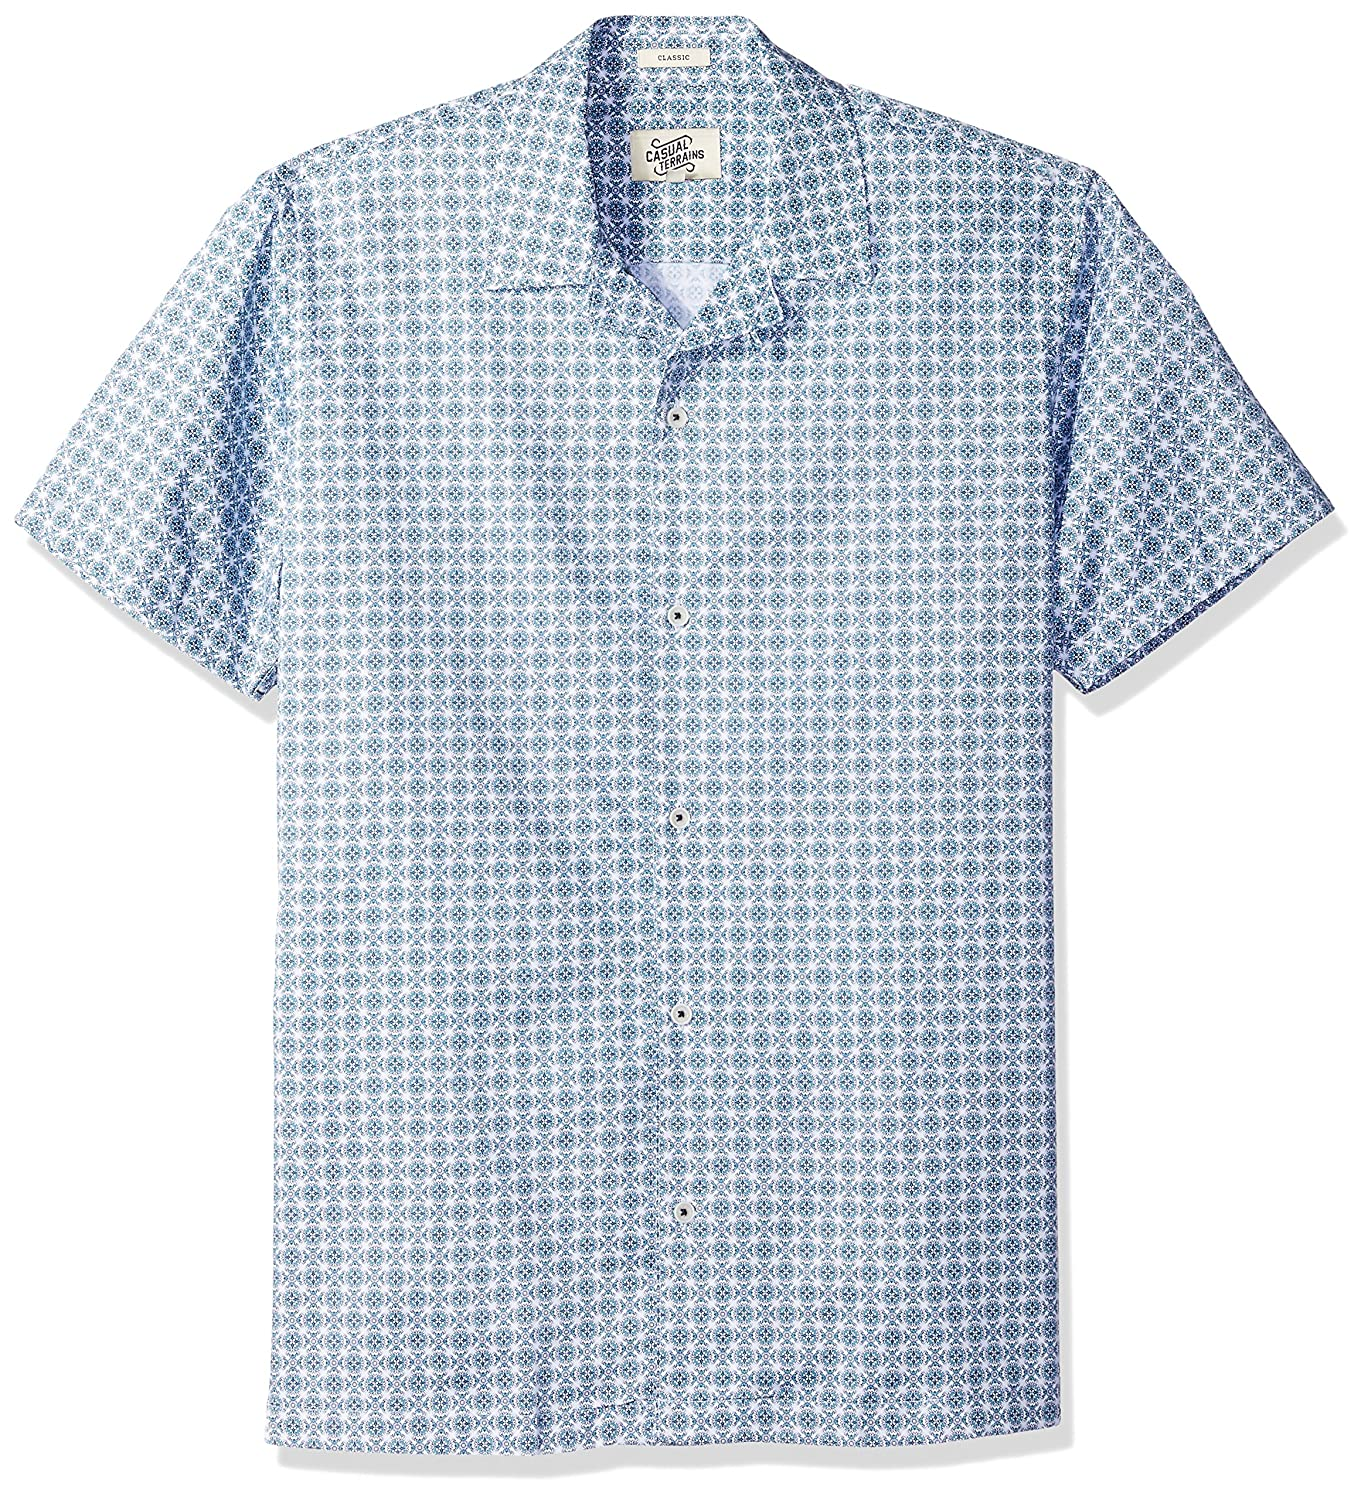 Vintage Shirts – Mens – Retro Shirts Casual Terrains Mens Classic-Fit Short-Sleeve Printed Camp Collar Shirt $27.95 AT vintagedancer.com